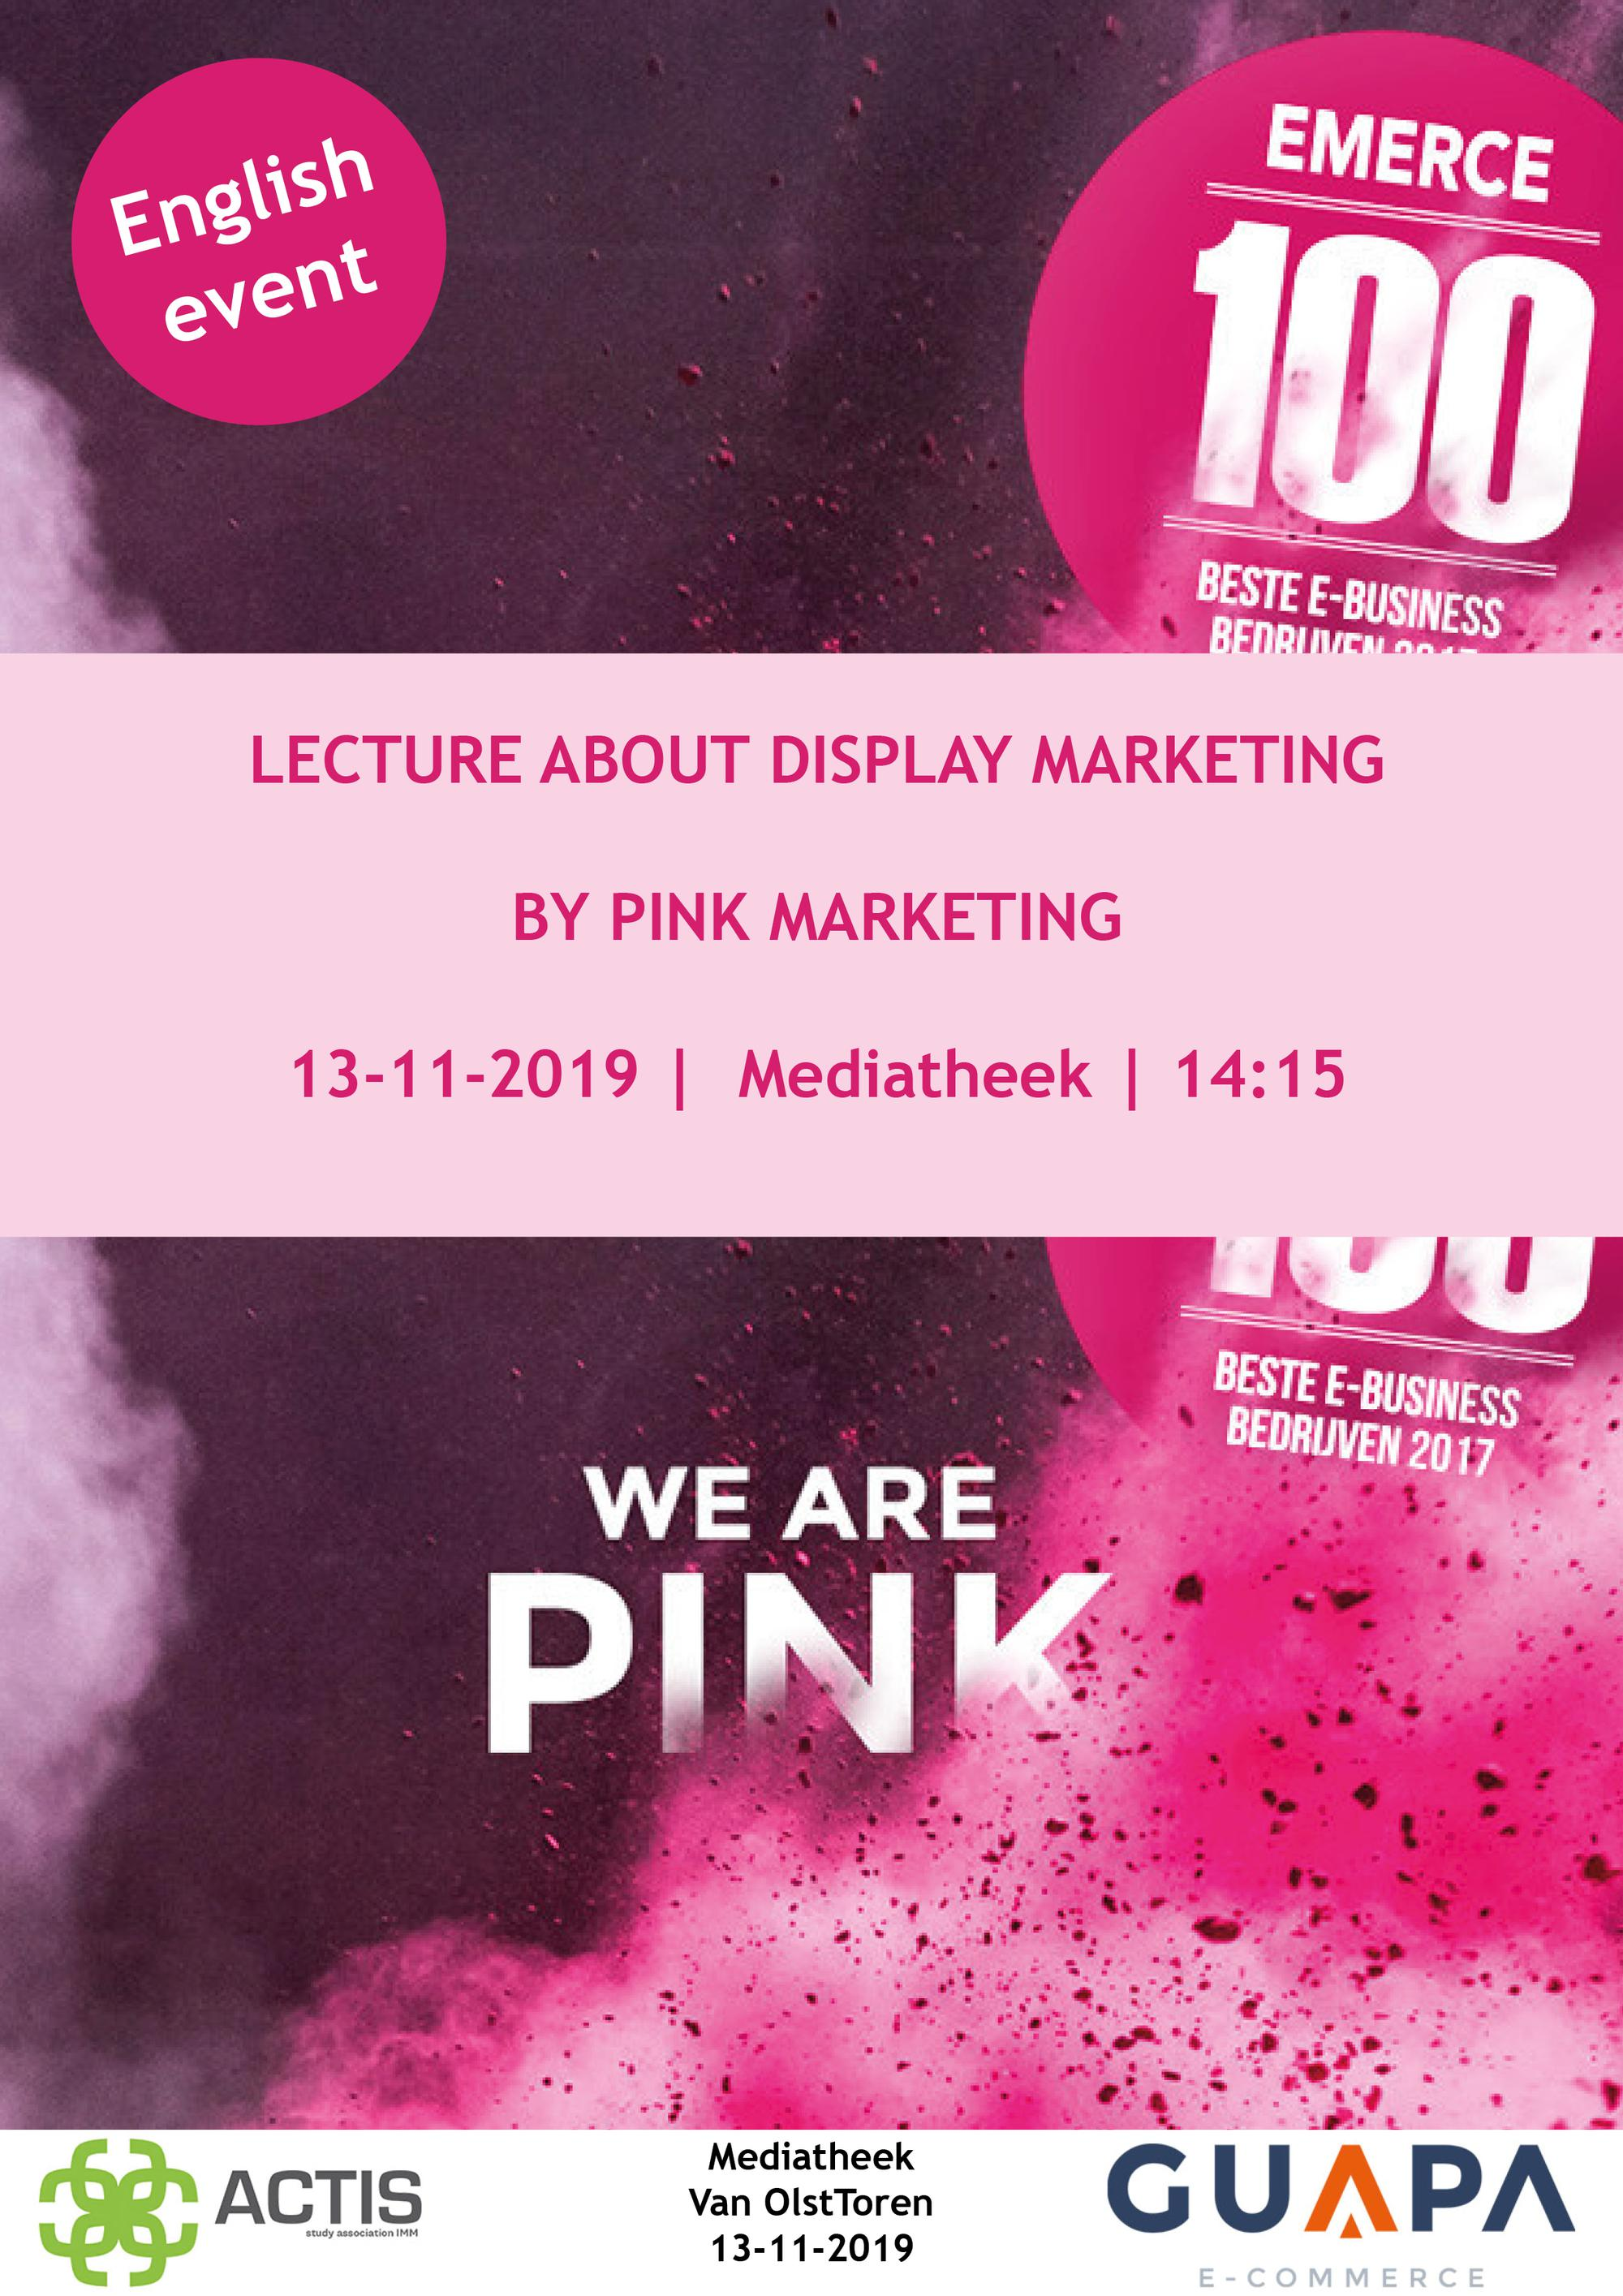 Display marketing lecture